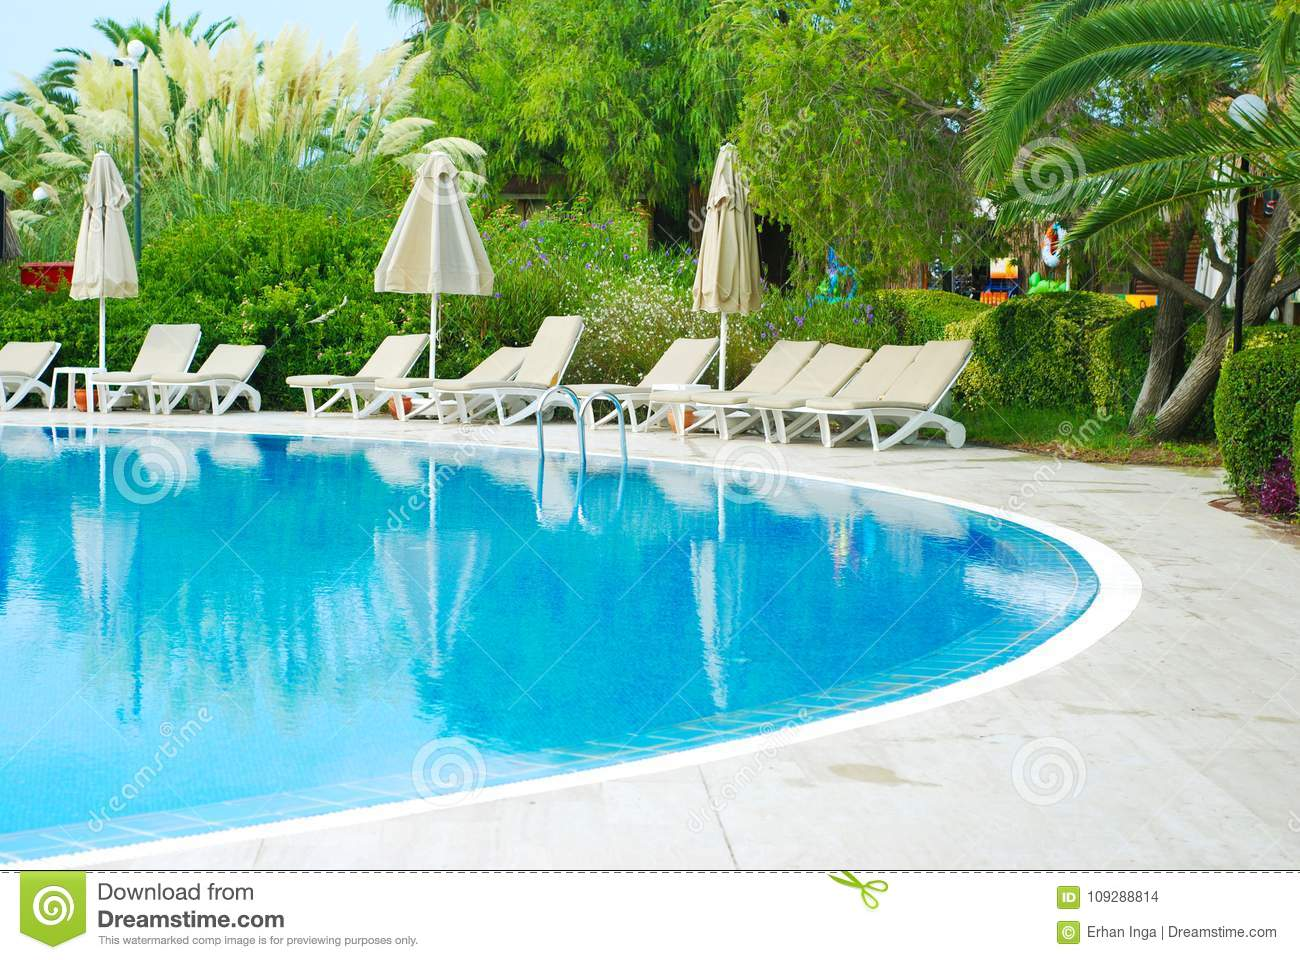 Beautiful Luxury Hotel Swimming Pool Resort with Umbrella and Chairs. Turkey, Side. Summer Vacation.